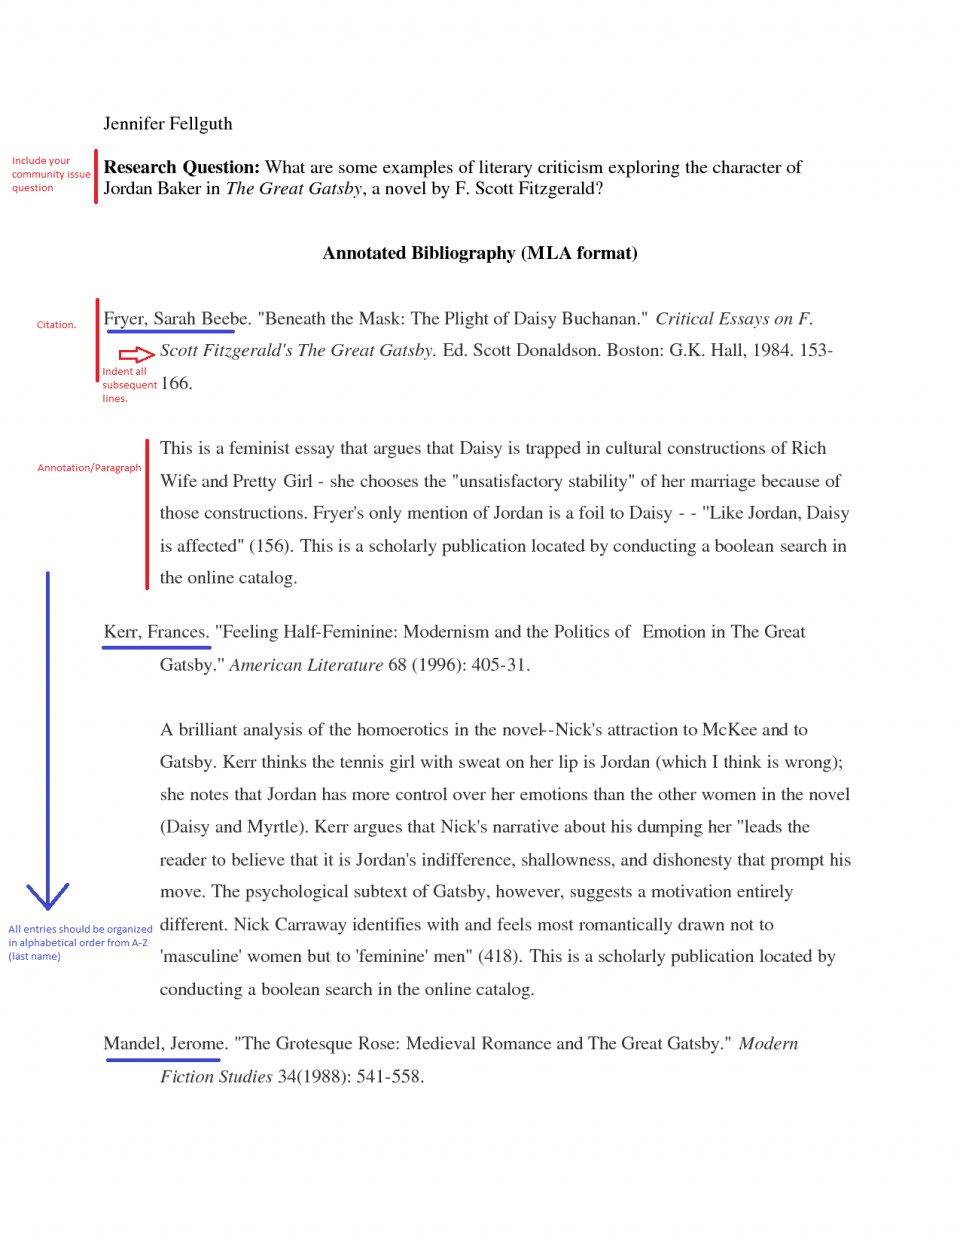 020 Mla Citation For Essay How To Cite Images In Format Did You Know Example Papernotatedbibsampleanno Parenthetical Citing Archaicawful An A Book 8th Edition 960